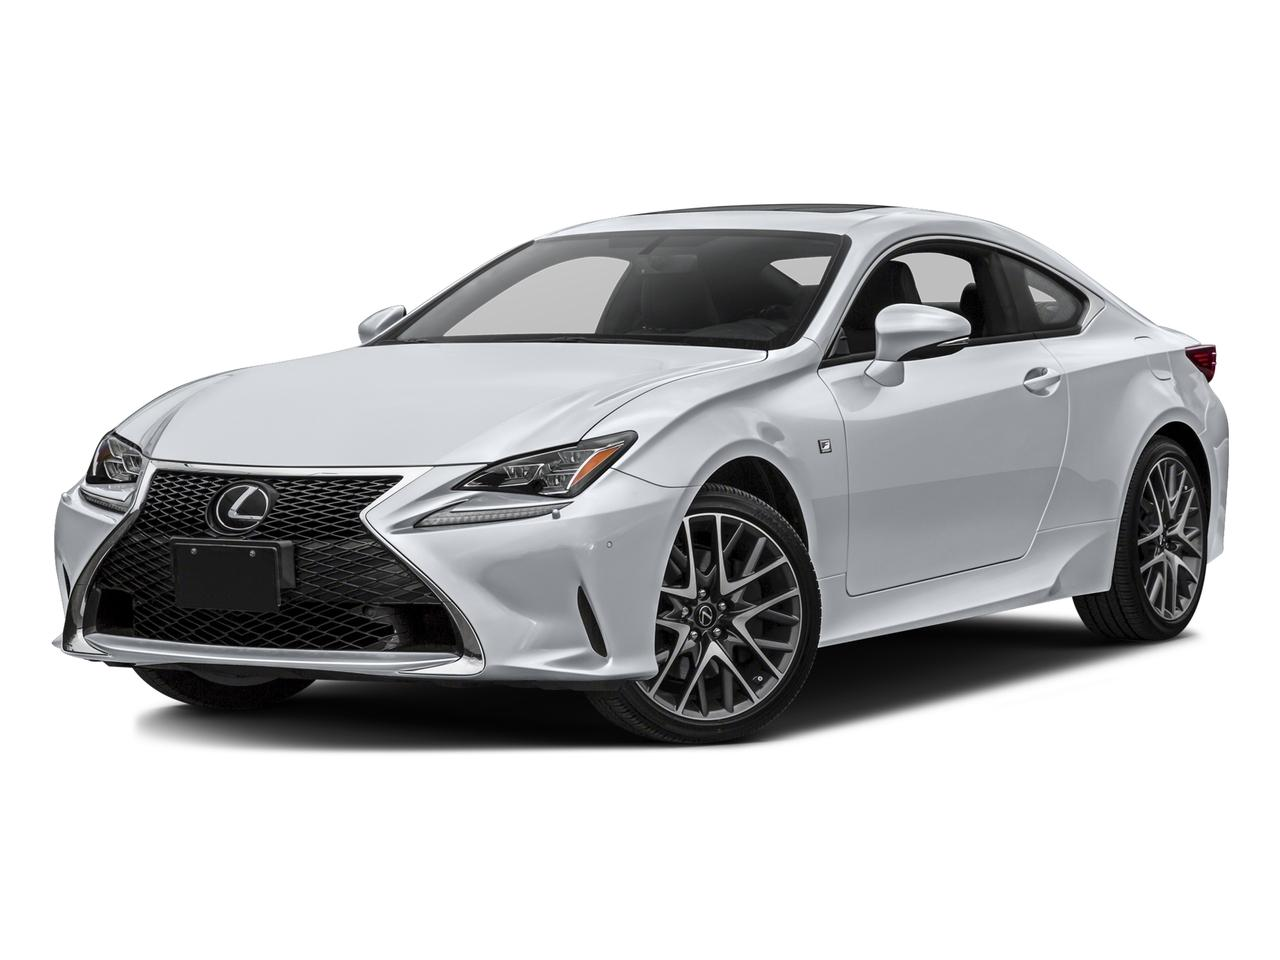 2016 Lexus RC 350 Vehicle Photo in Tucson, AZ 85712